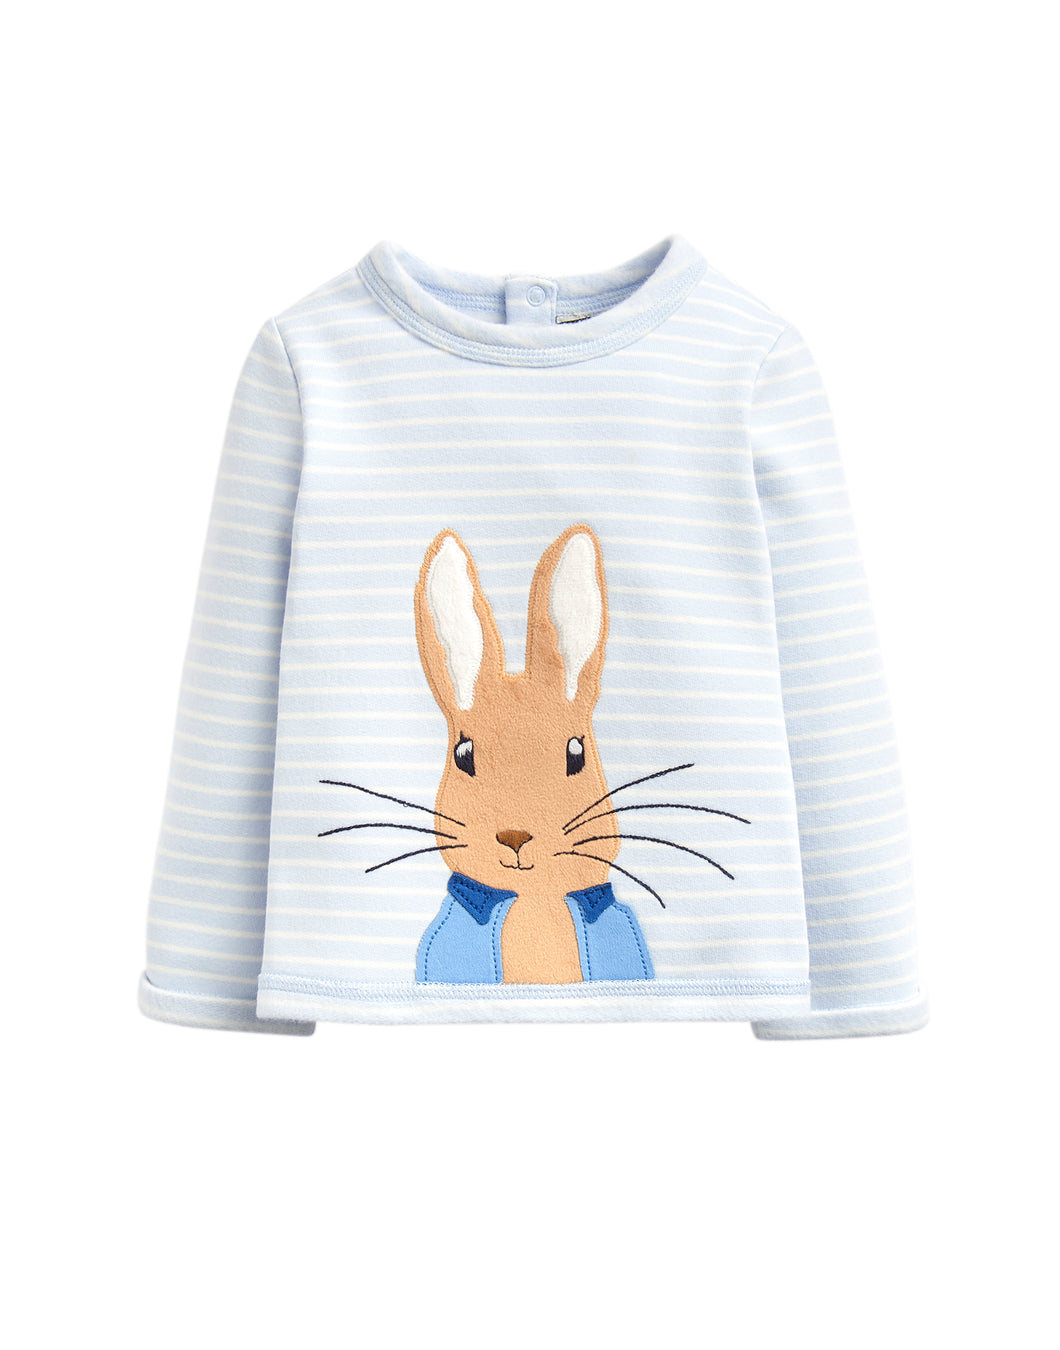 PETER RABBIT™ Sweatshirt (0-12 Months)